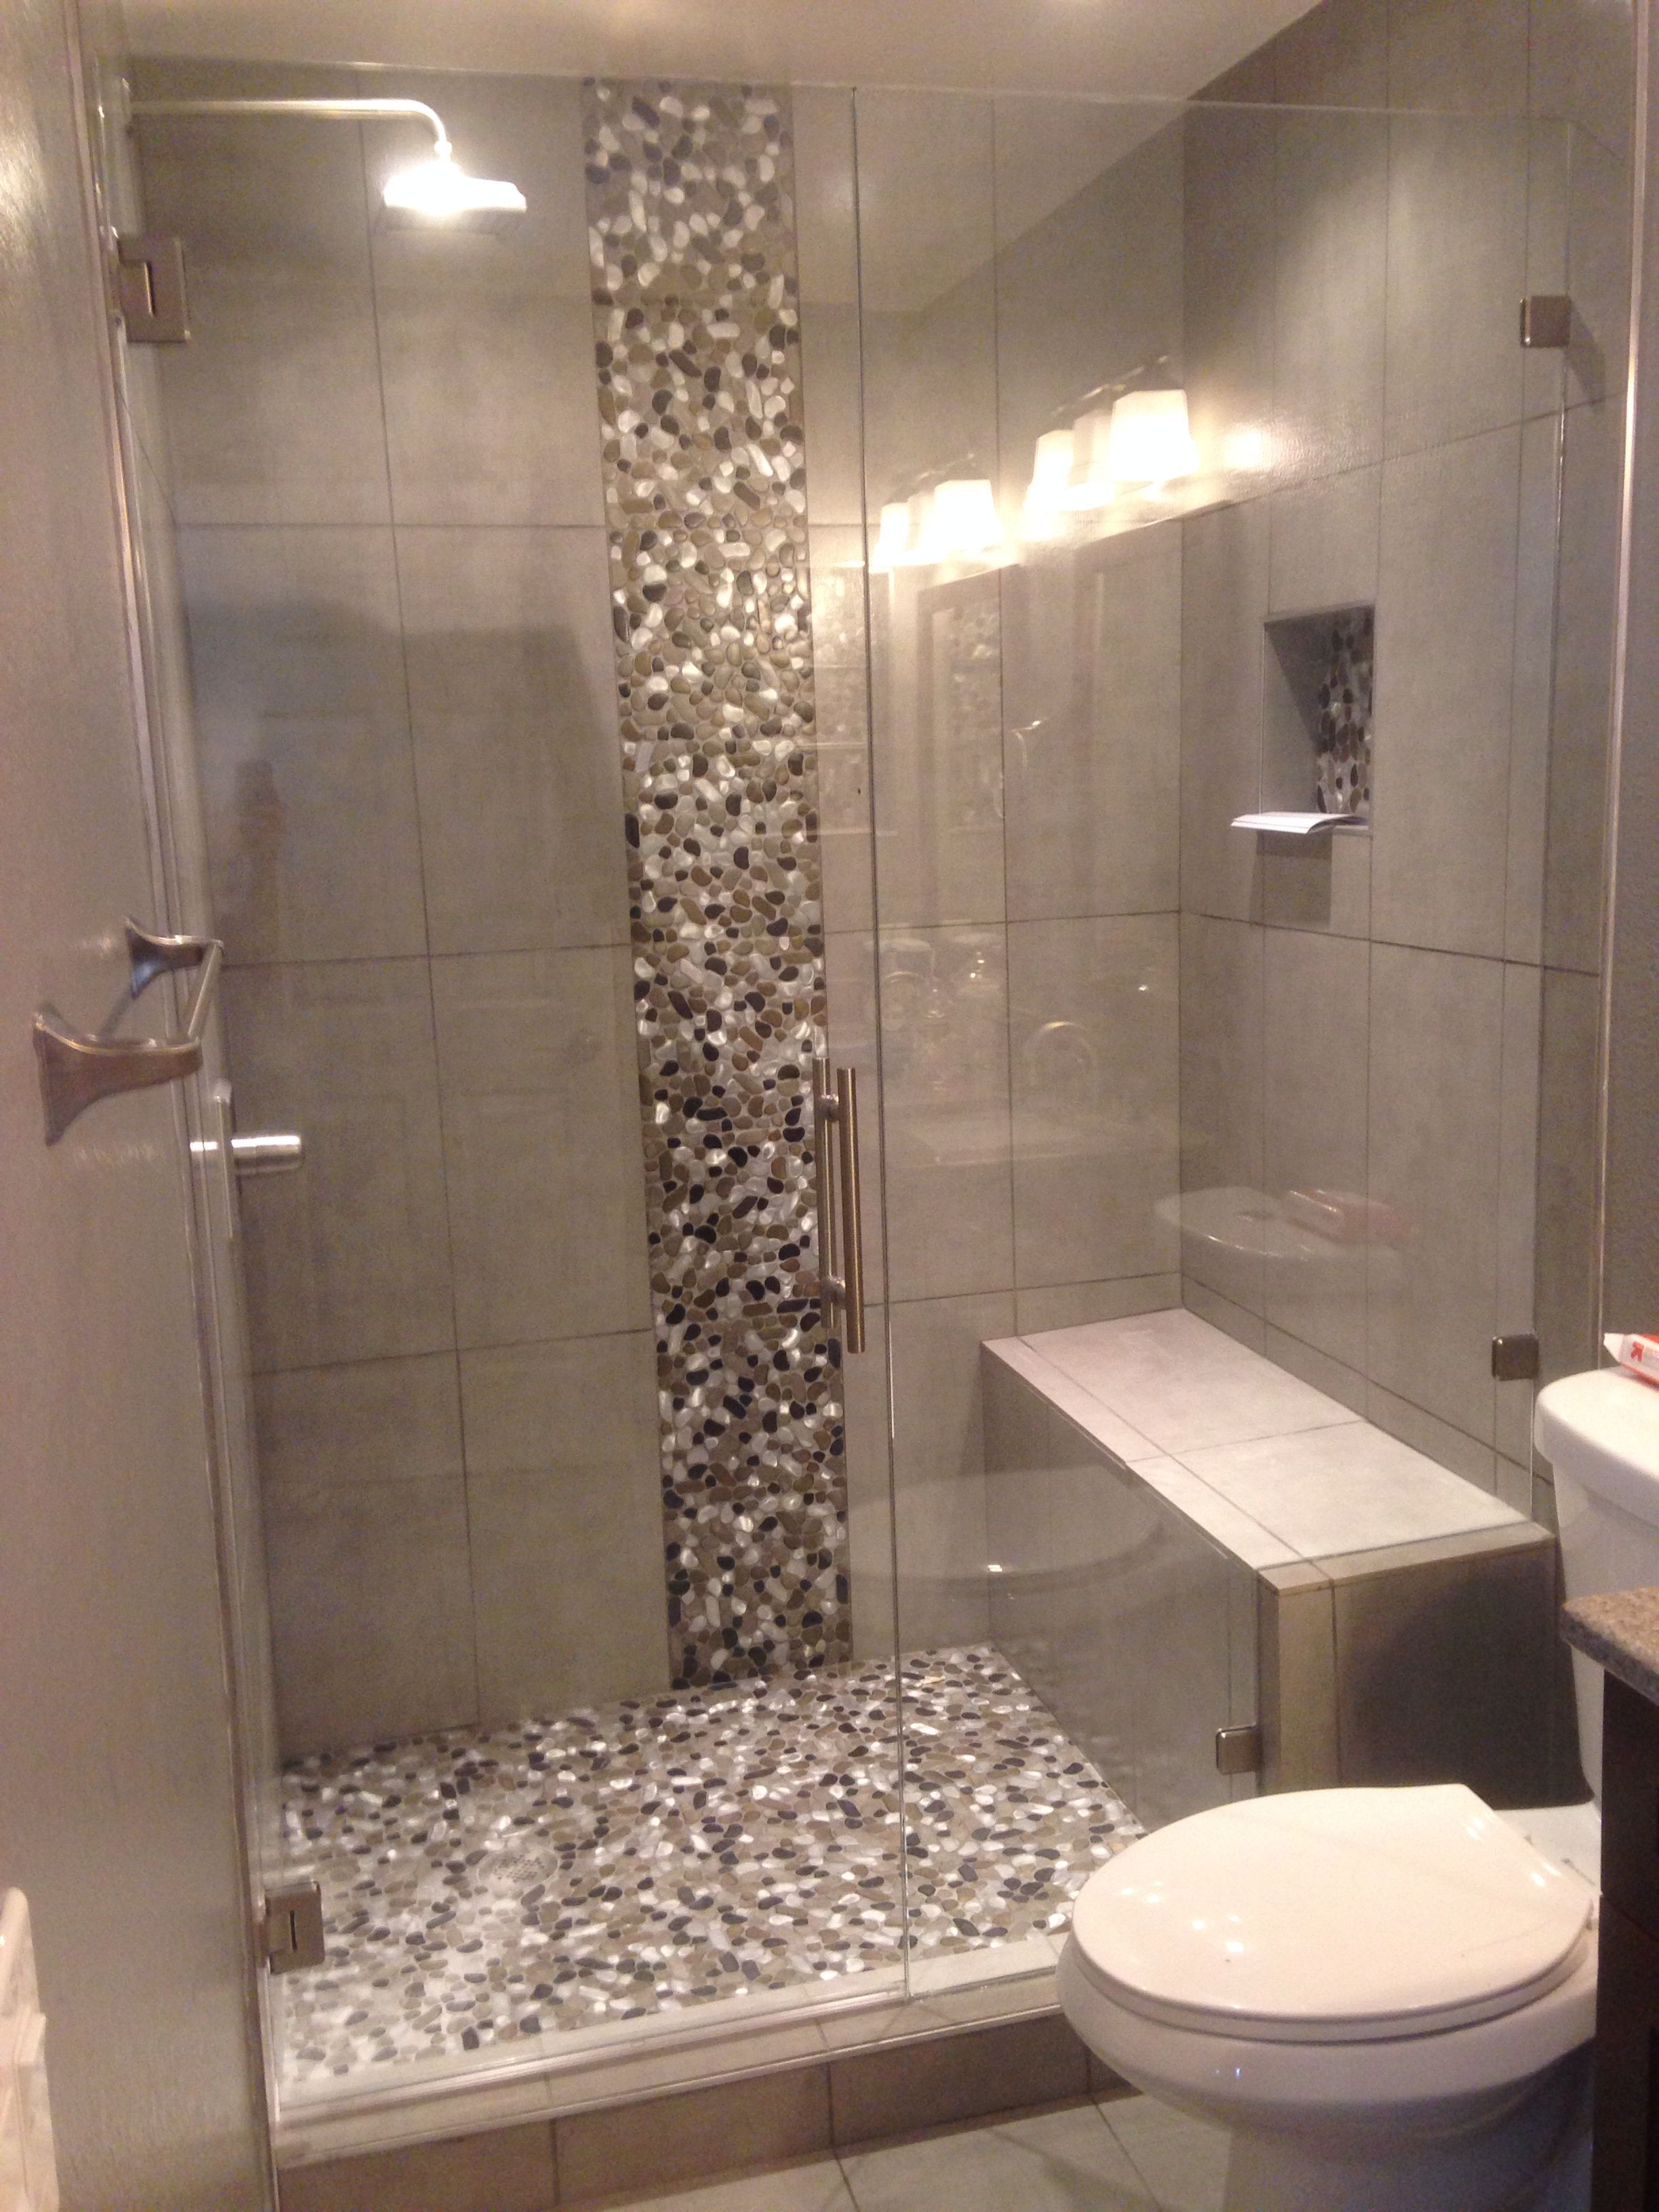 Bathroom Tile Designs Gallery Now You Know How To Make Your Bathroom Look Spectacular With Bathr Bathroom Remodel Shower Shower Remodel Bathroom Remodel Master